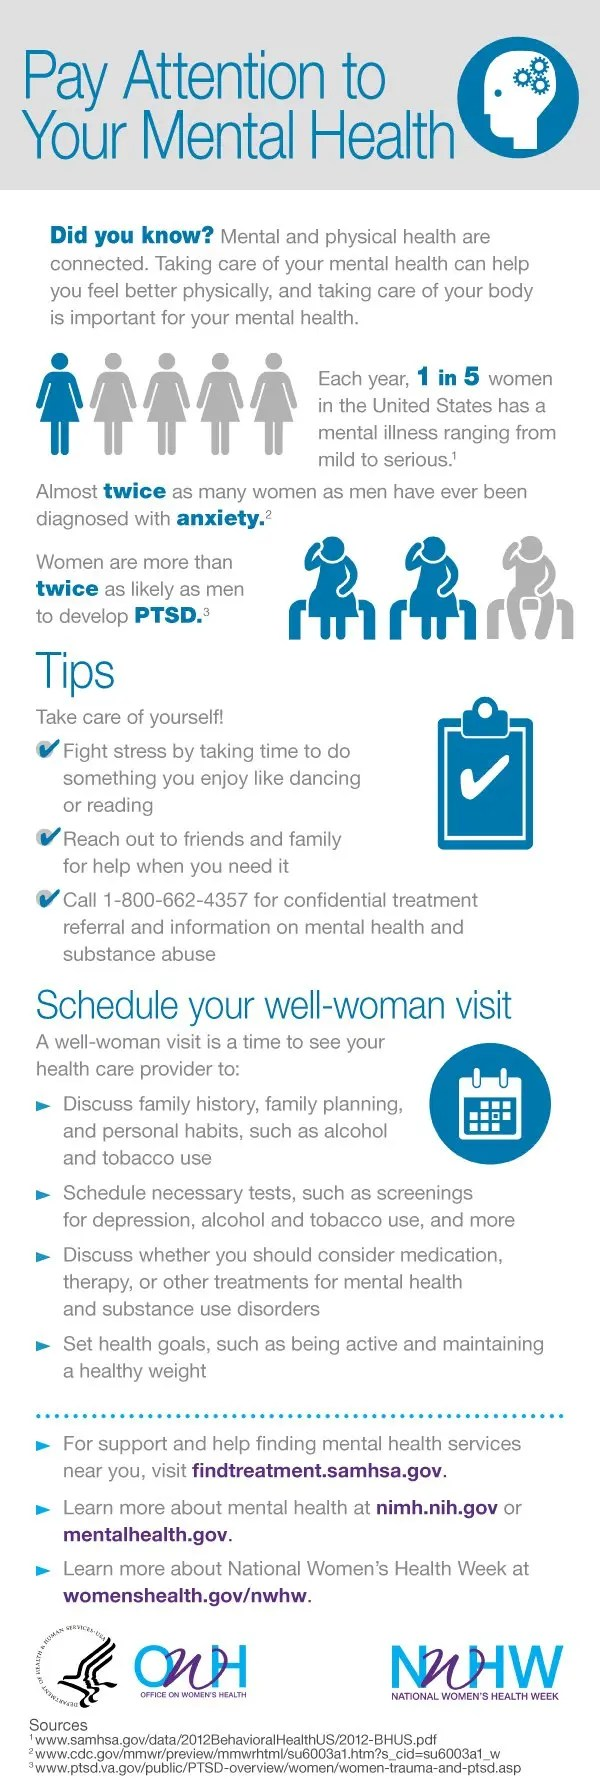 National Women's Health Week 2014 - Pay Attention to Your Mental Health infographic